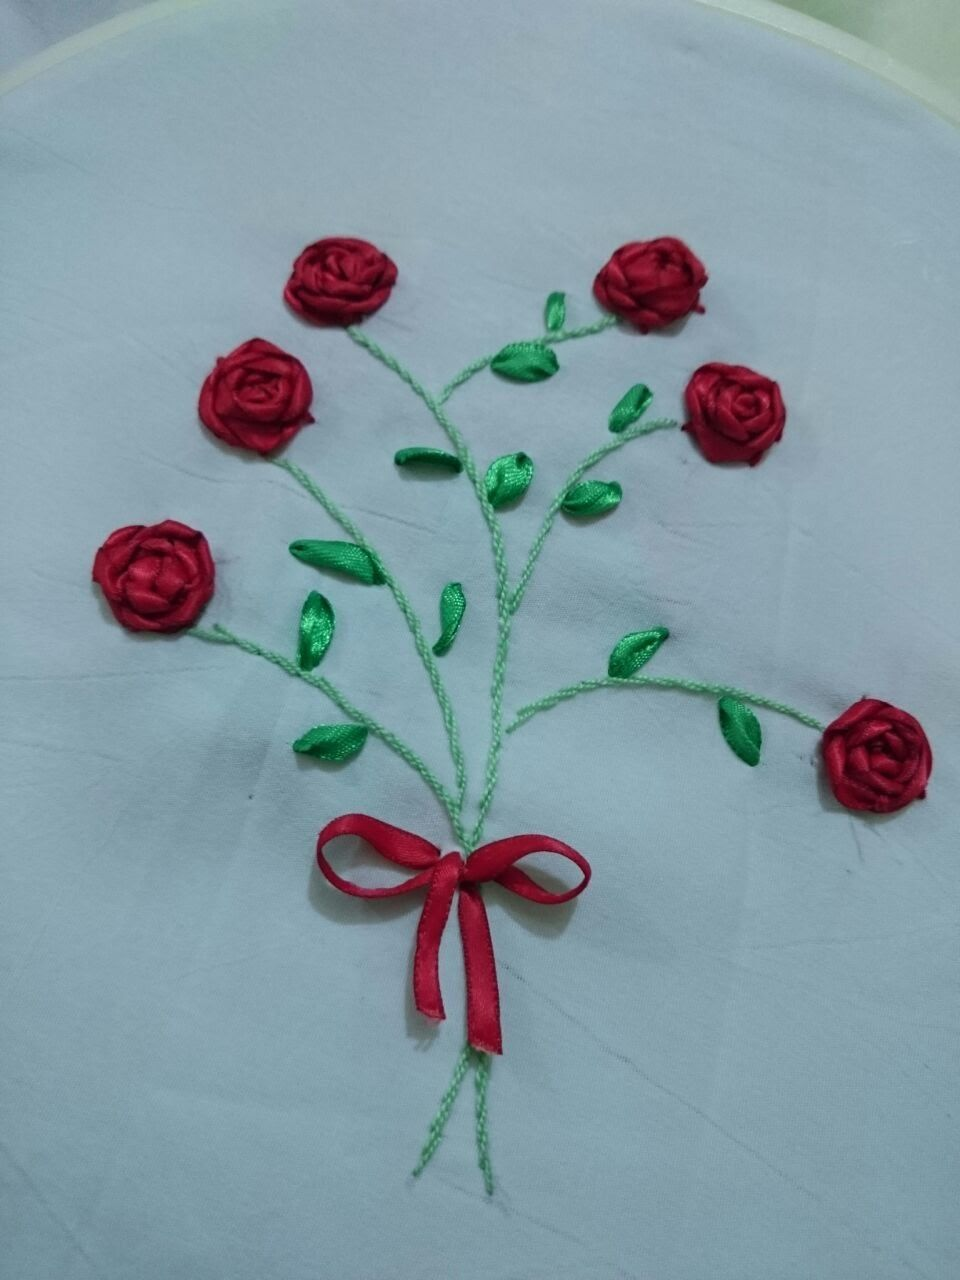 How To Make A Satin Ribbon Rose For Ribbon Embroidery Projects